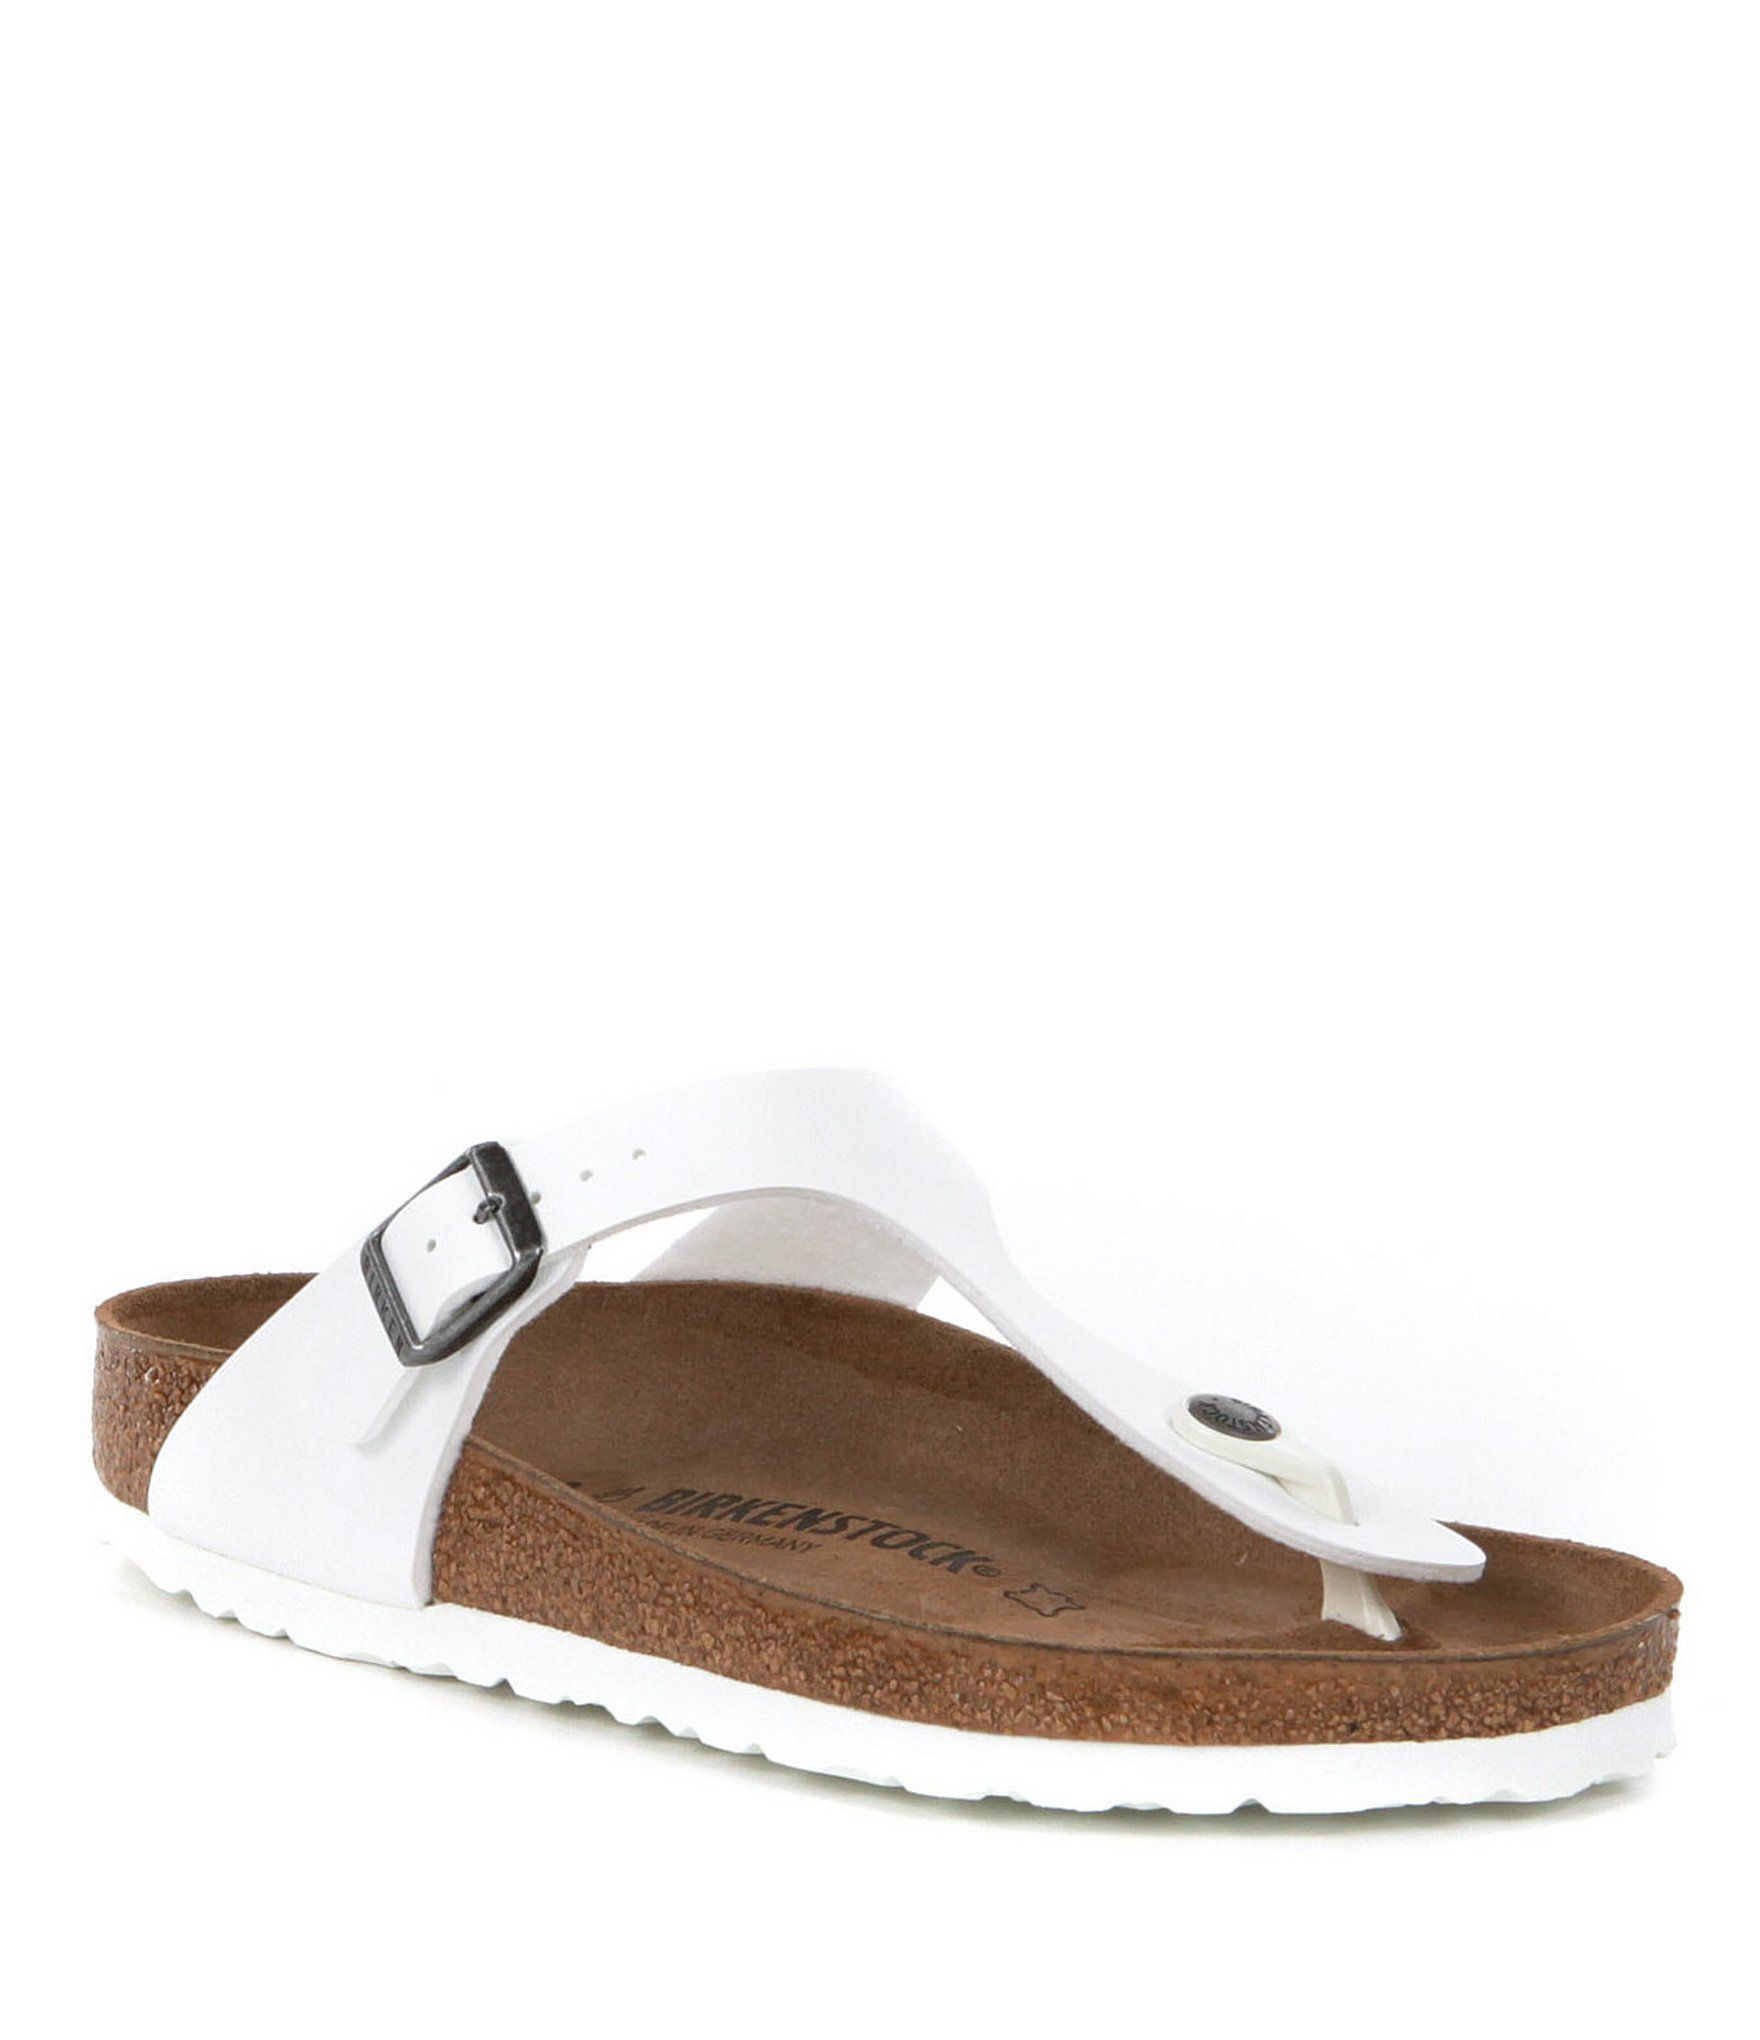 Birkenstock Gizeh Adjustable Strap Thong Sandals QtPMtJ